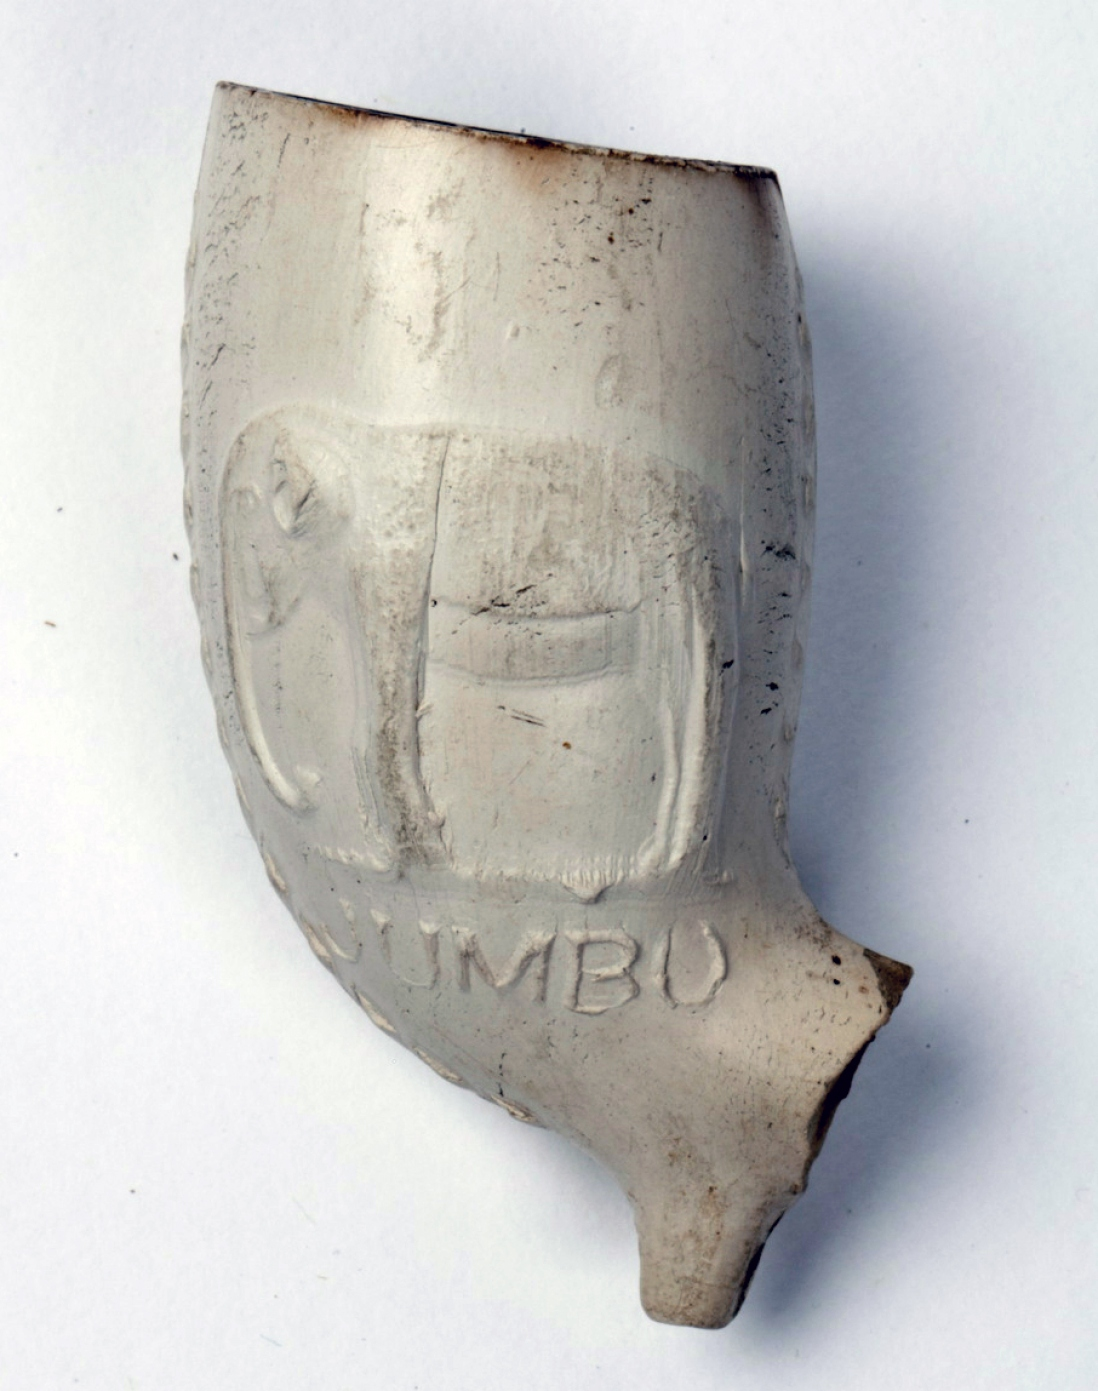 White clay pipe bowl with stem cut off, and carving of elephant.